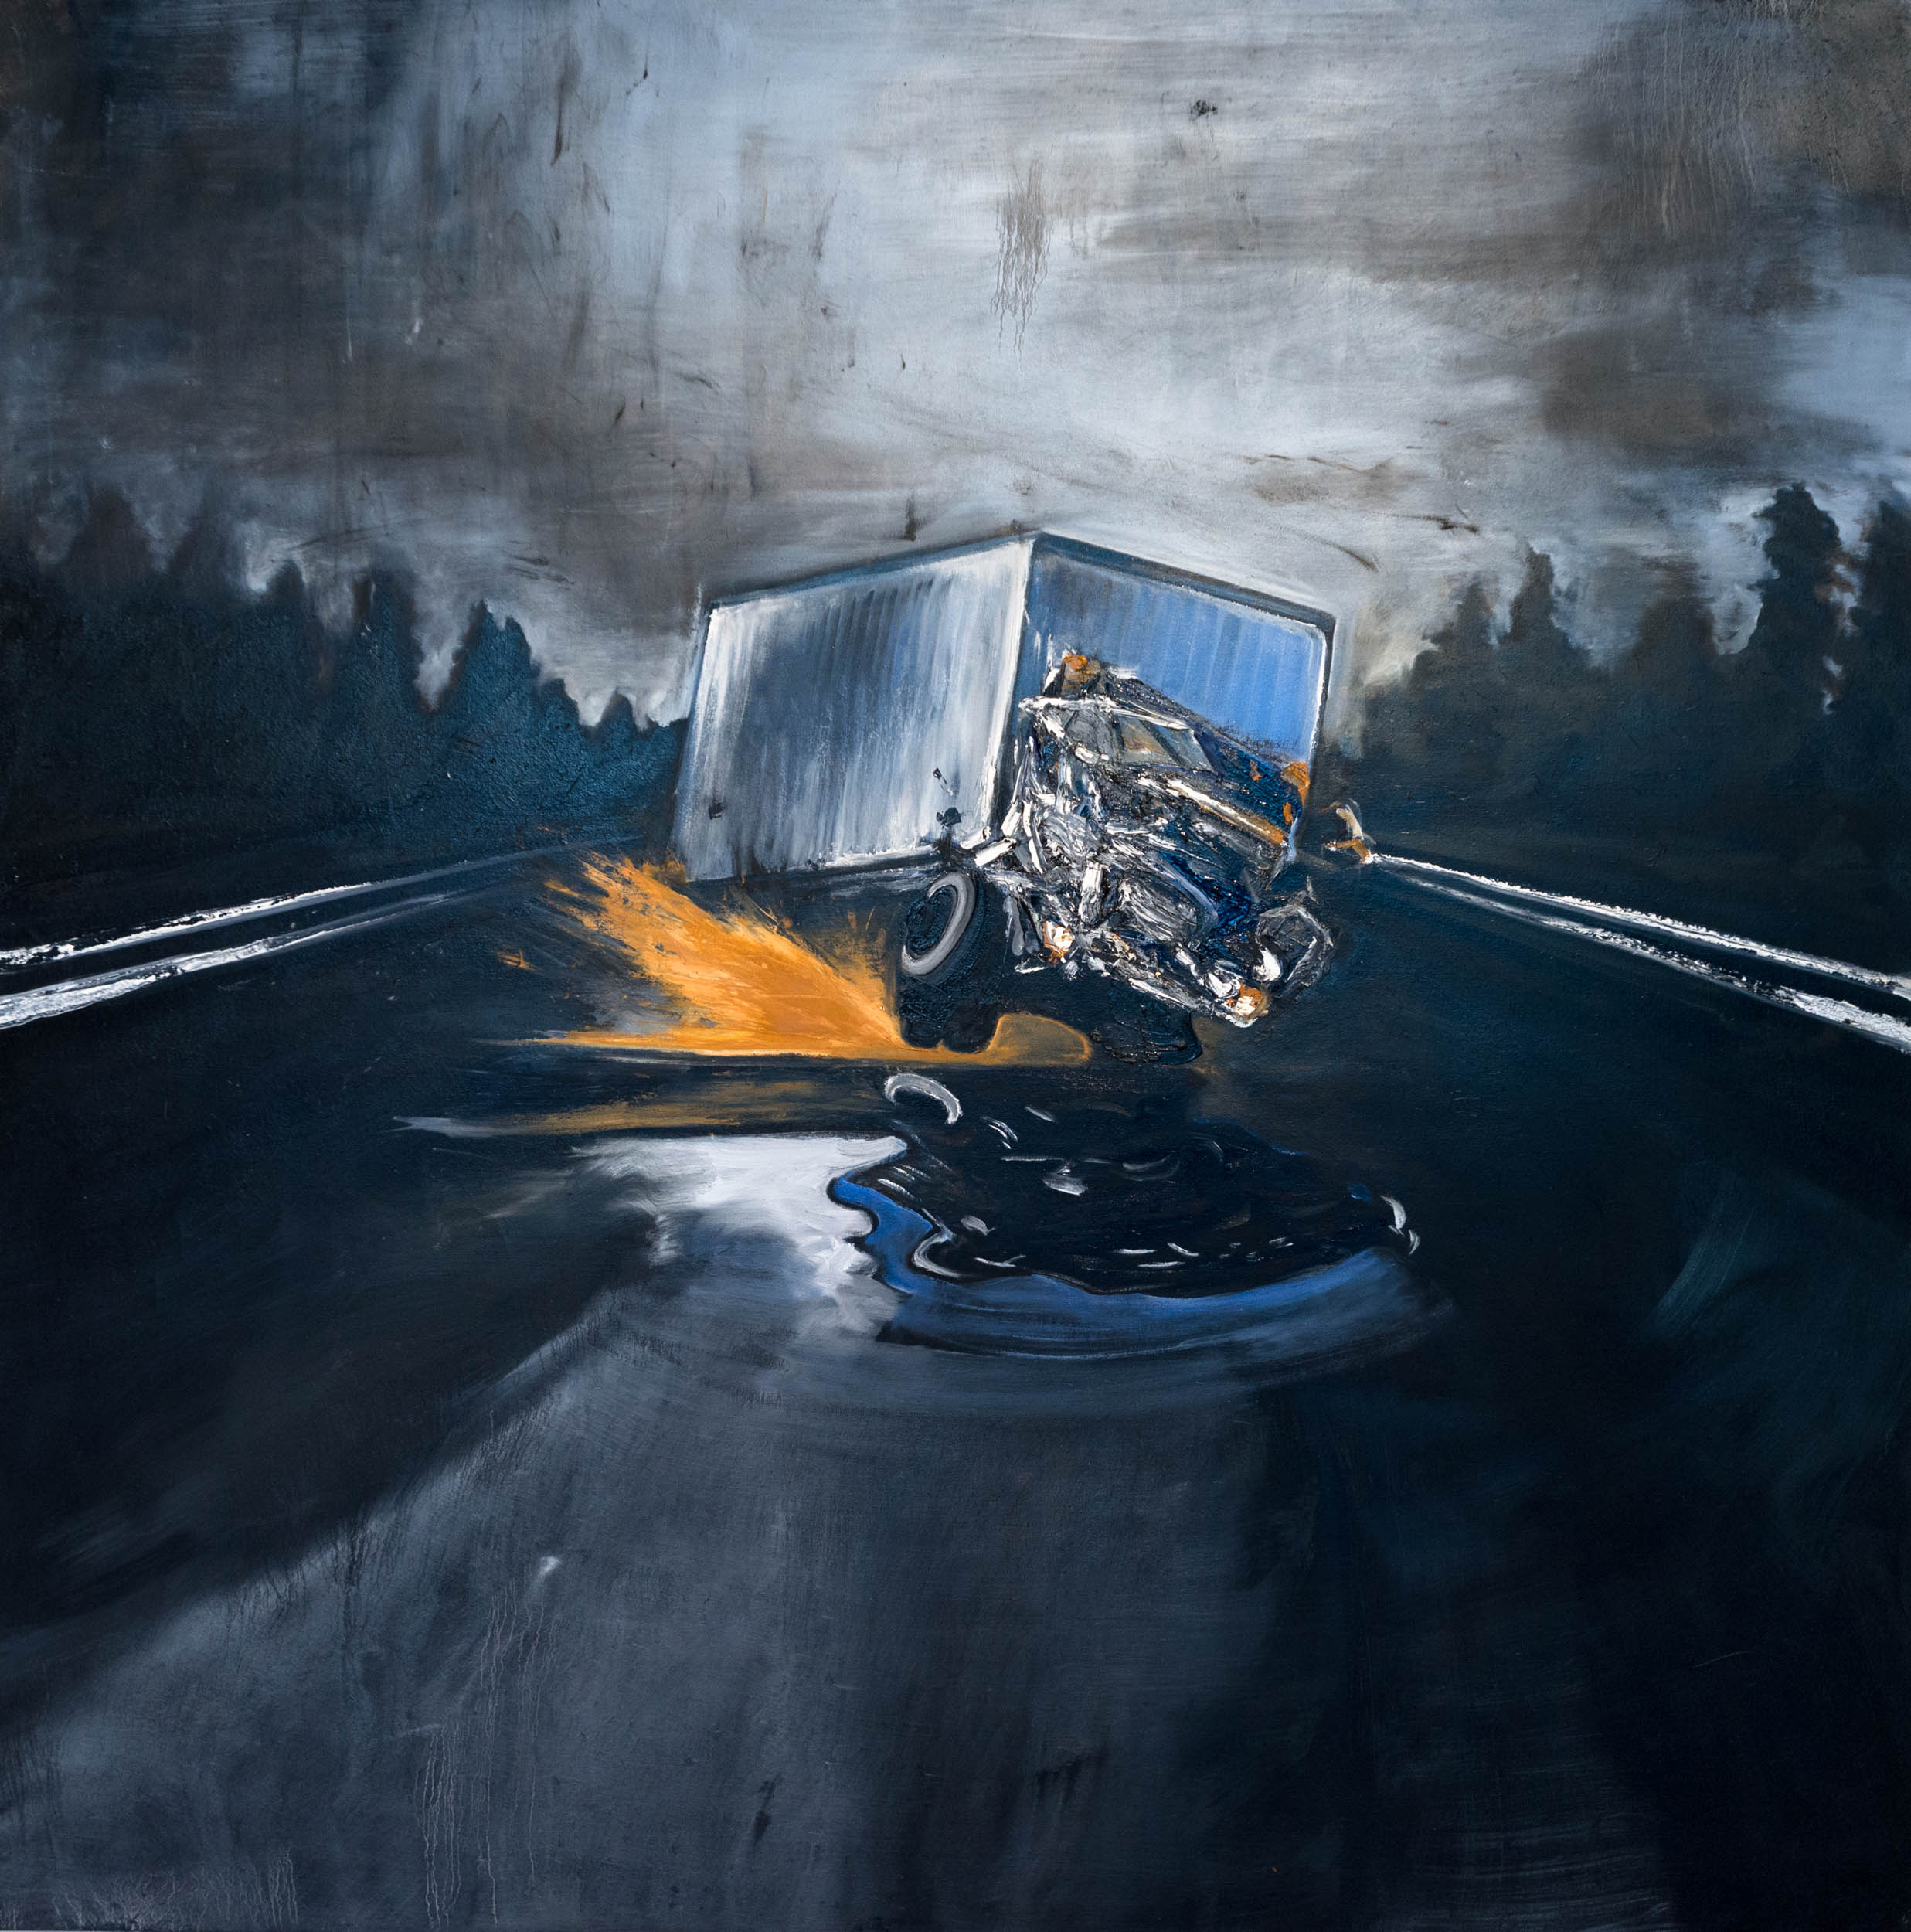 Gabriel Baribeau - Stopped Suddenly - Oil on Canvas